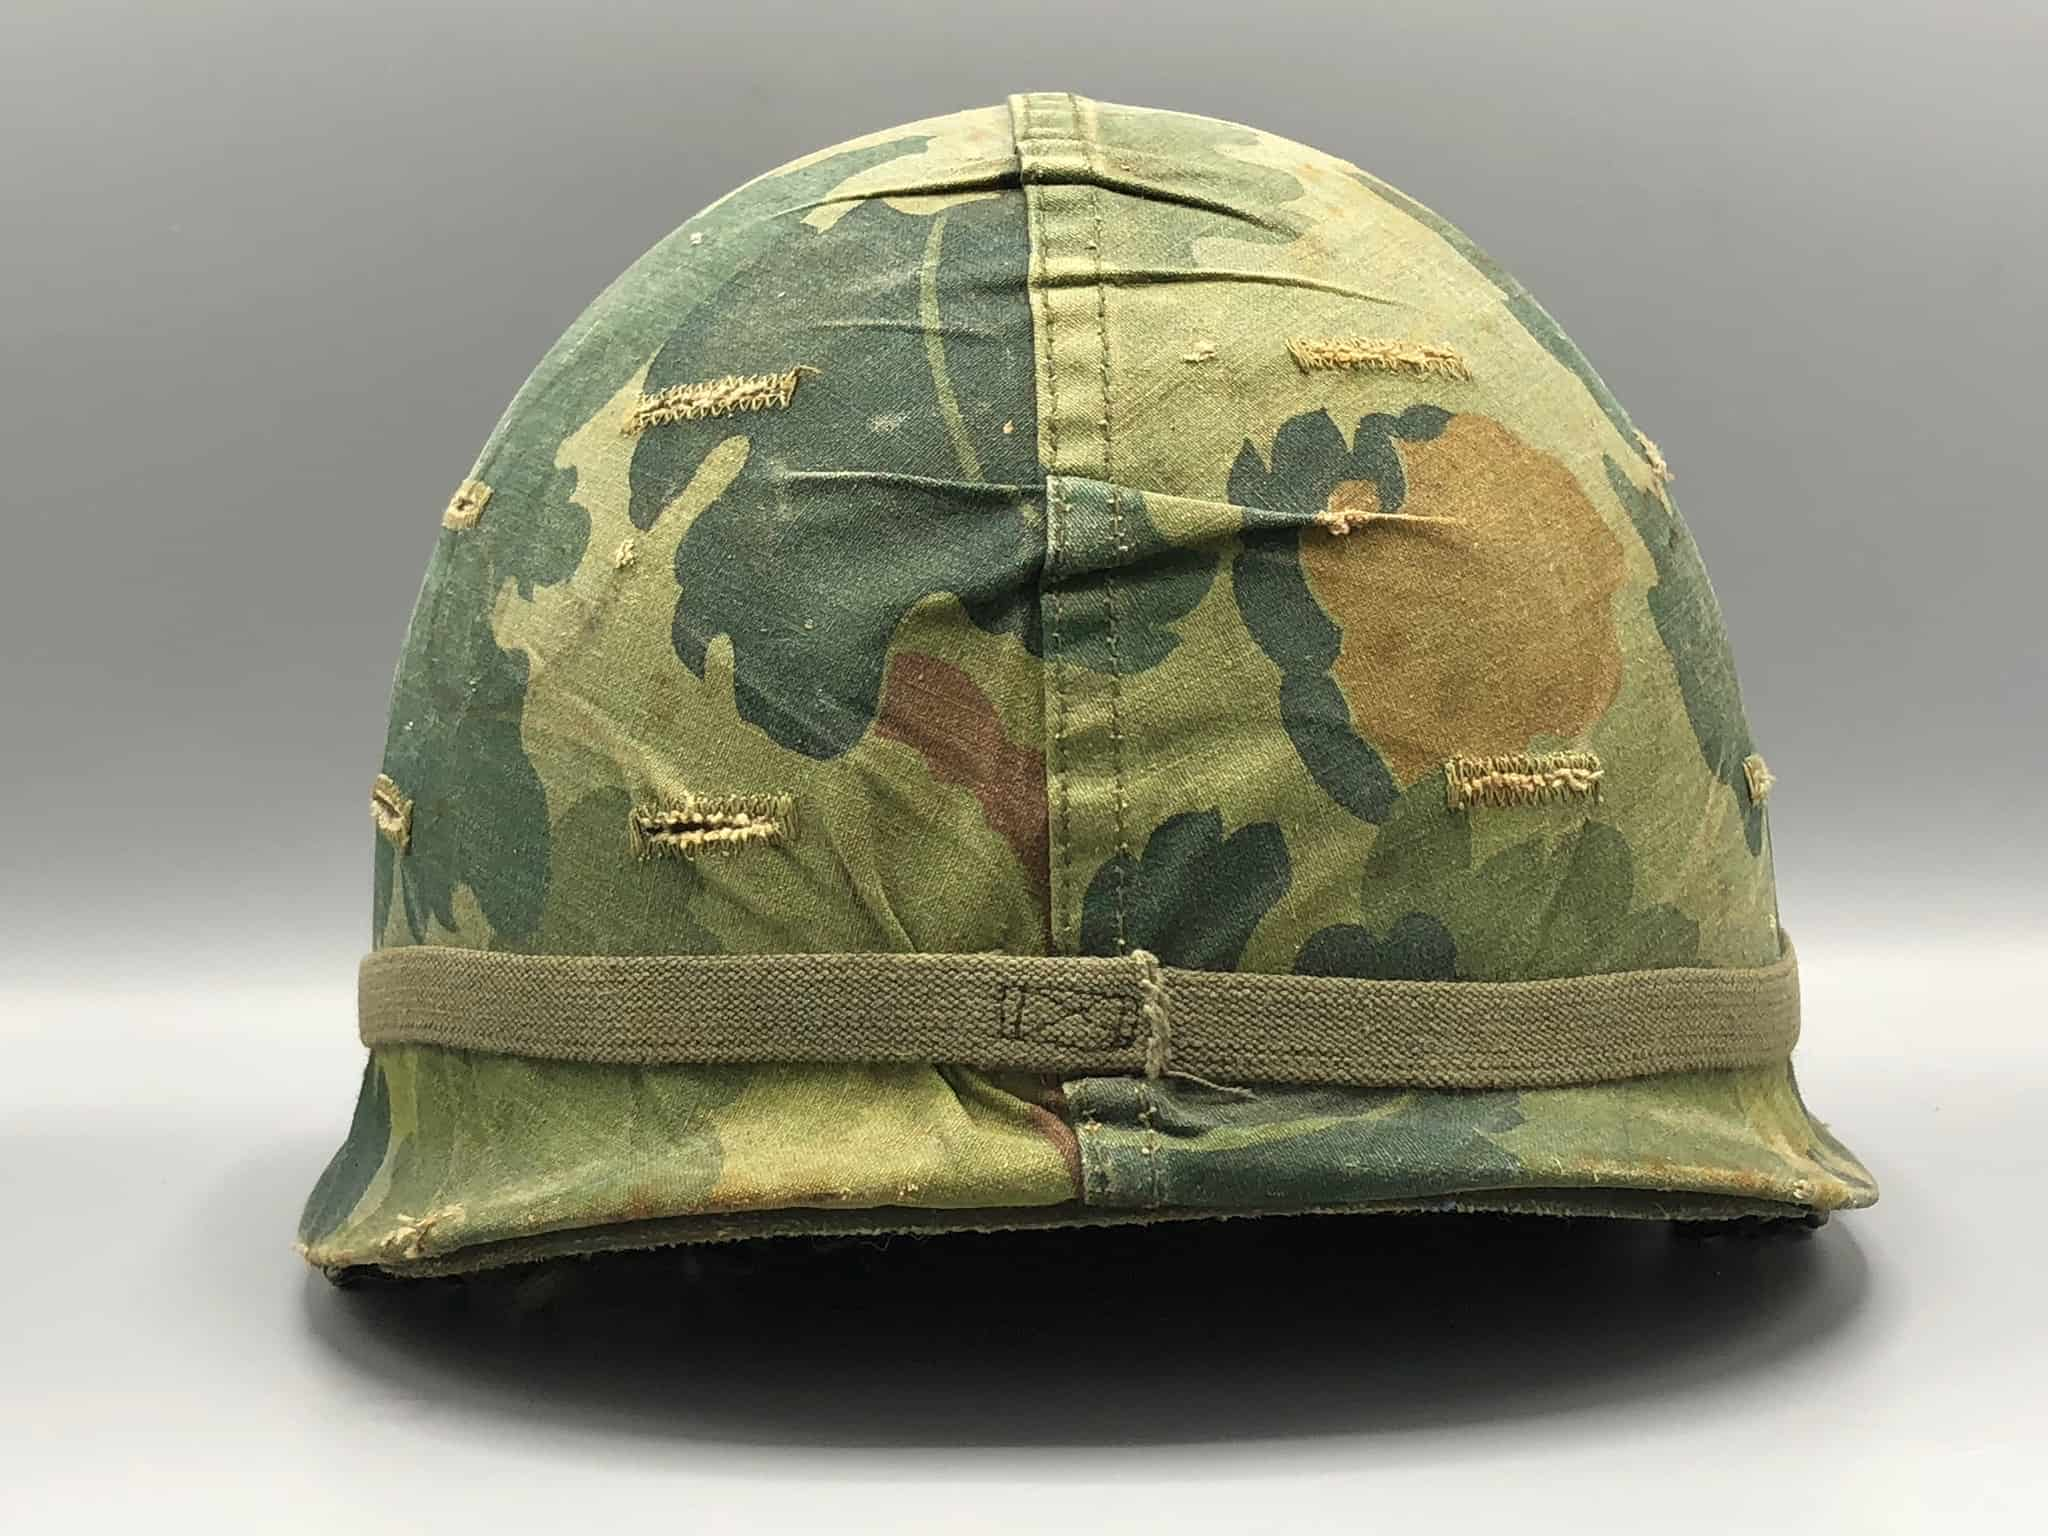 The helmet used in Vietnam was identical to the one used in Korea and differed from the WWII version by having a lower profile